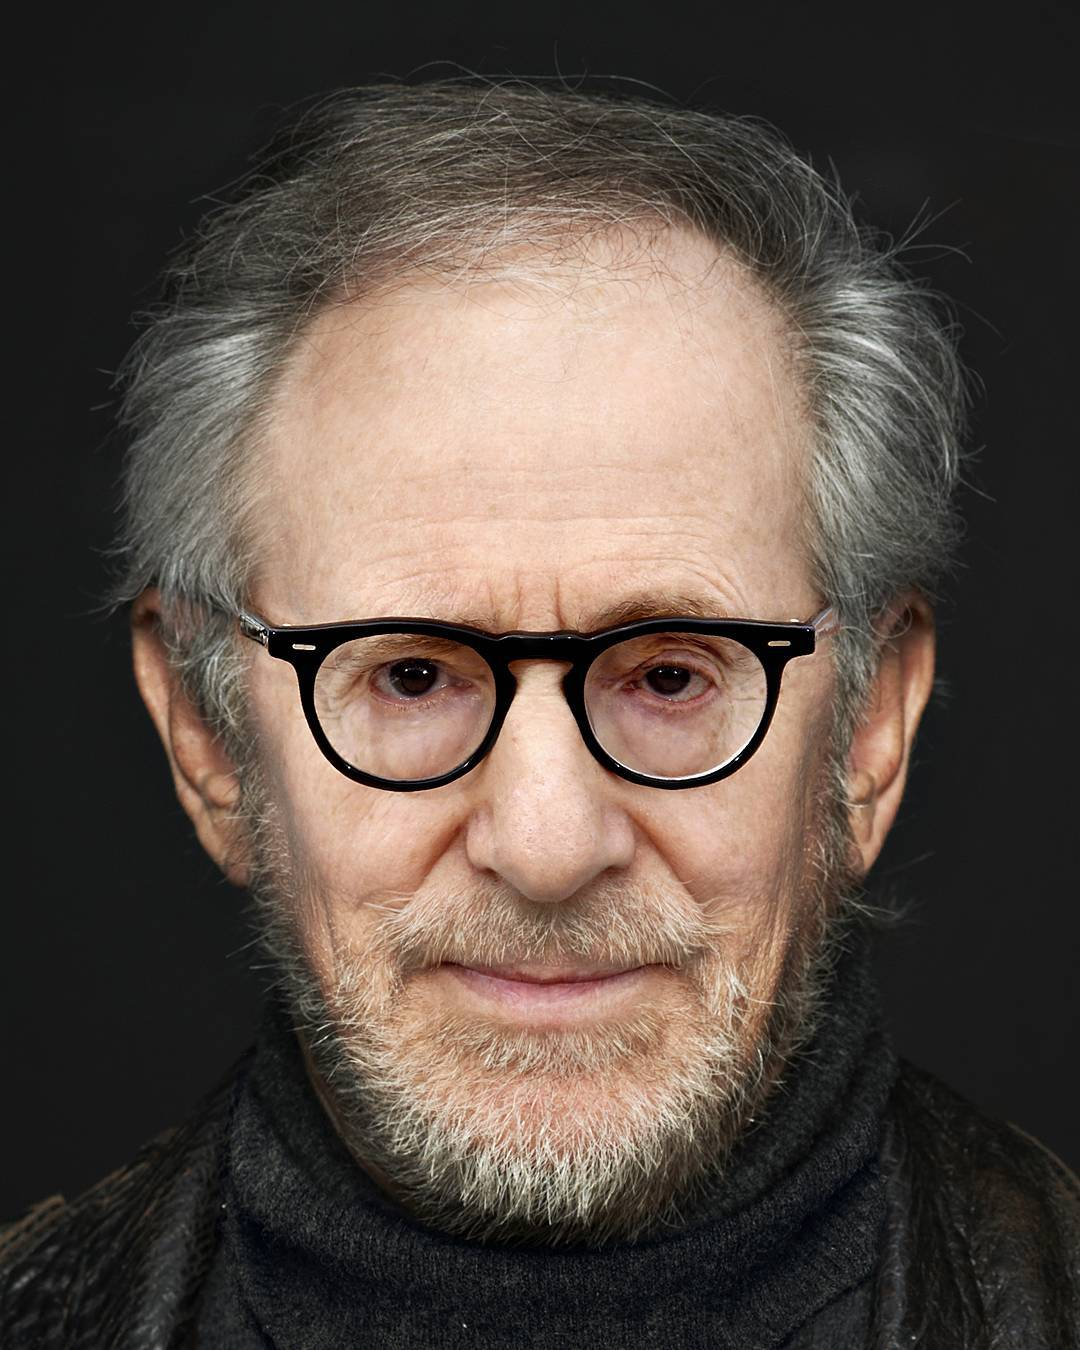 Photoshop Guru Fuses Celebrity Faces Together - Steven Spielberg and Woody Allen